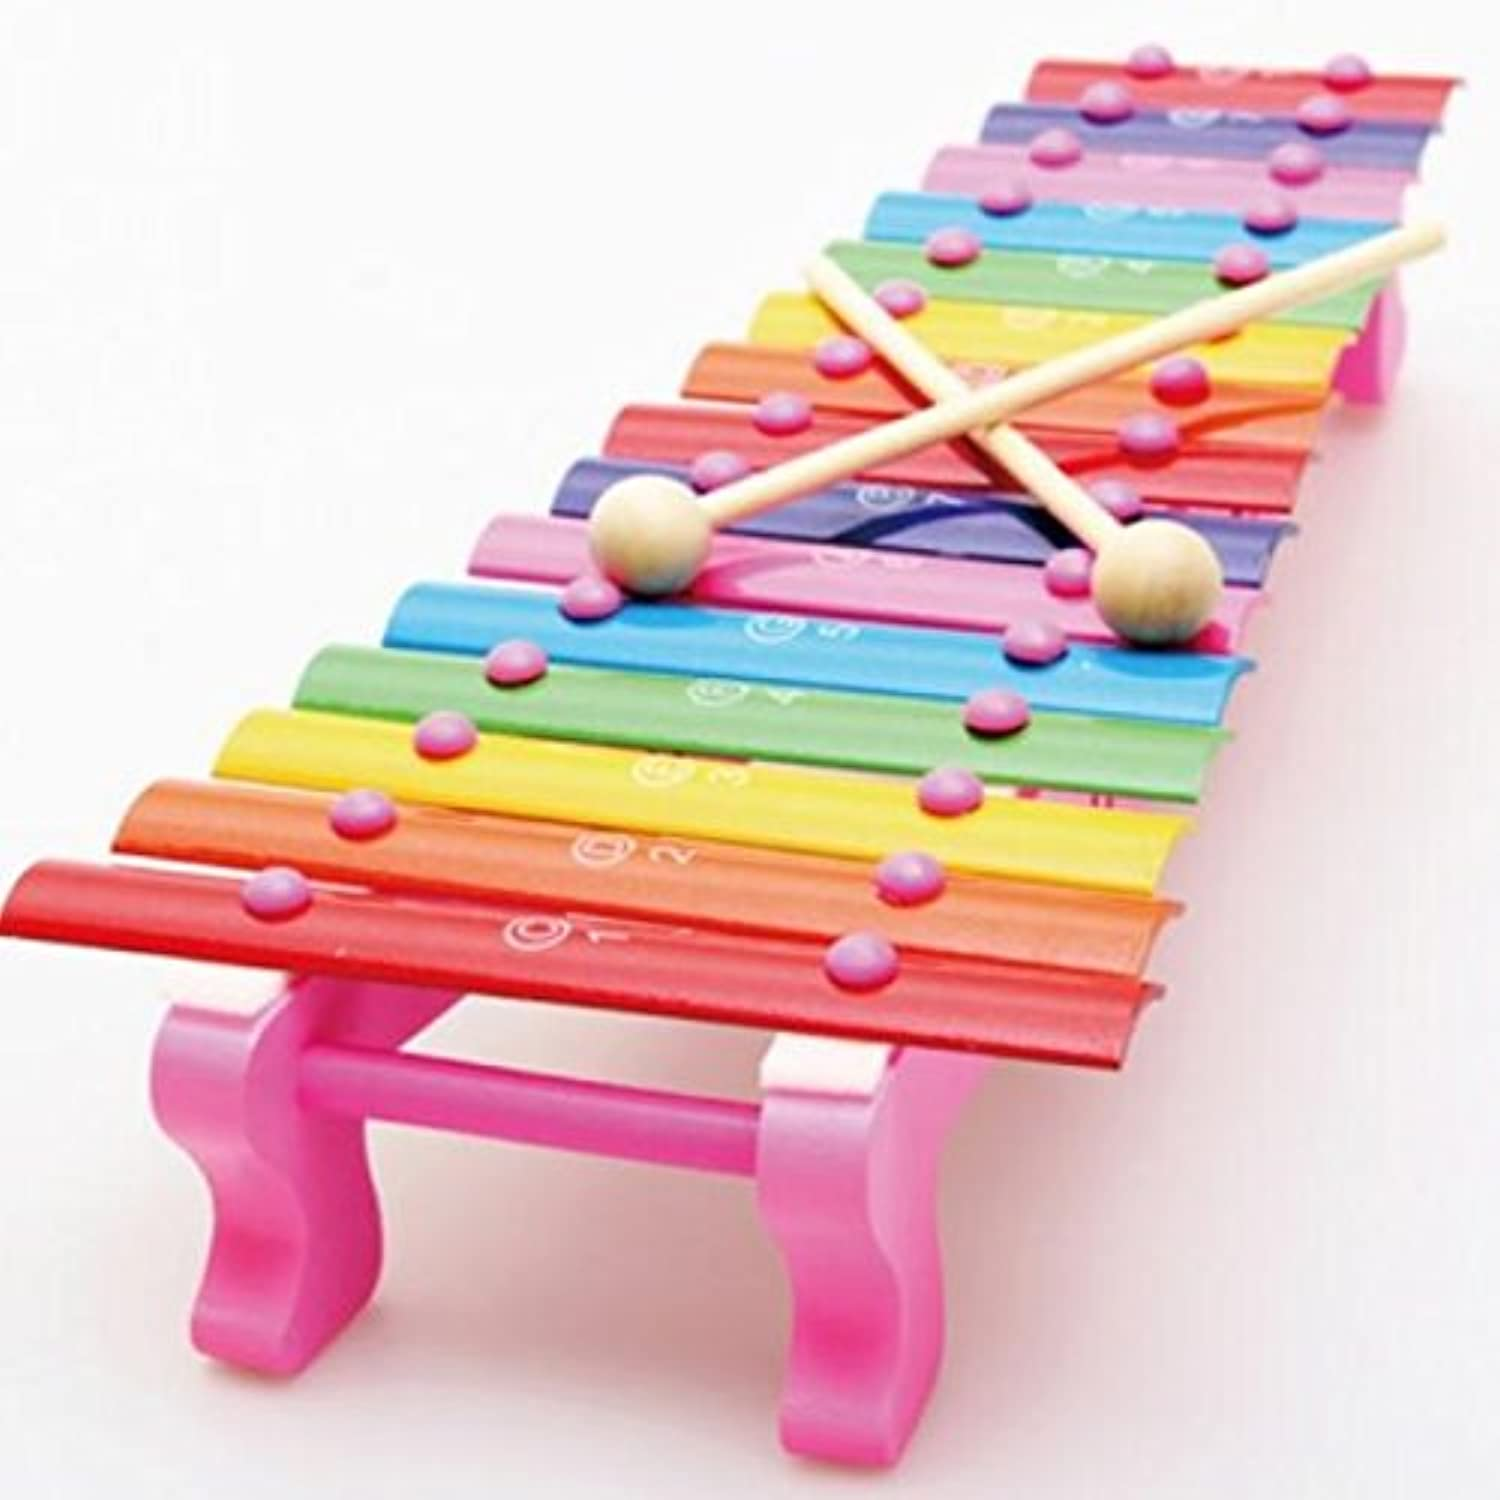 Kids Music Toy 15 Keyboard Xylophone Eight Sounds Knock Piano Pull Along Toy for Learning Music(Pink)